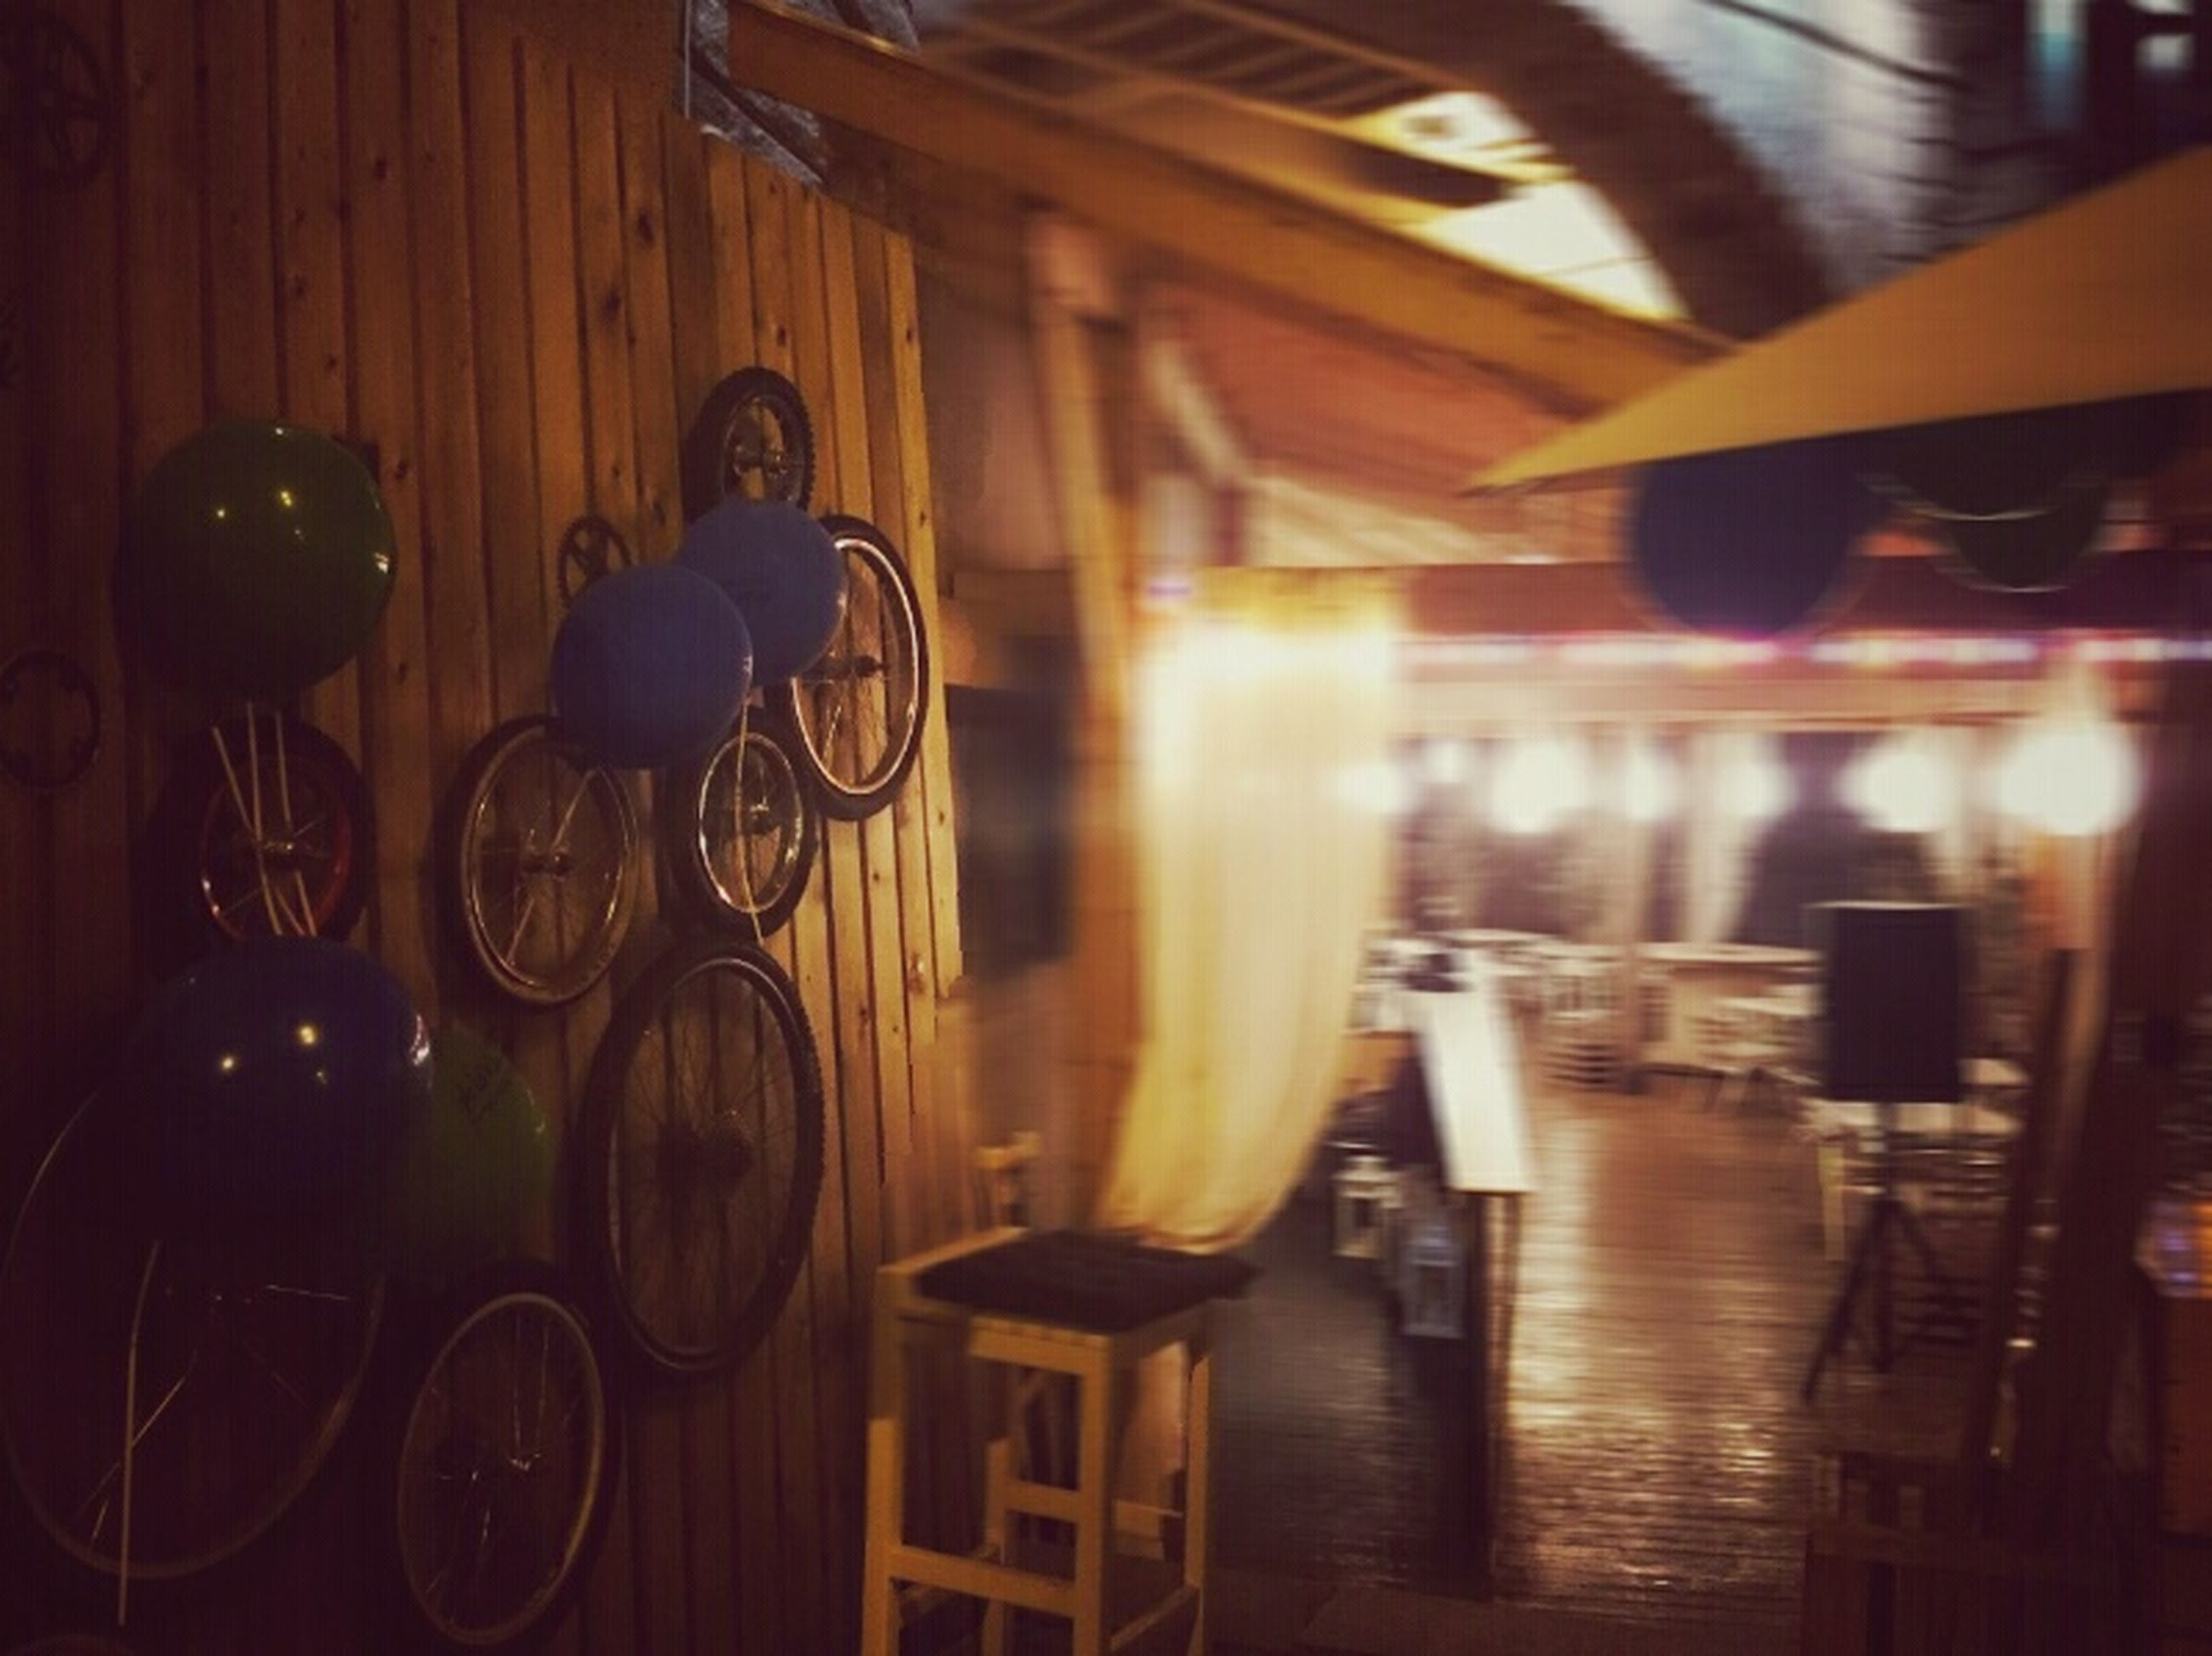 indoors, illuminated, lighting equipment, architecture, table, built structure, bicycle, in a row, chair, night, absence, no people, reflection, hanging, light - natural phenomenon, house, building exterior, shadow, sunlight, empty